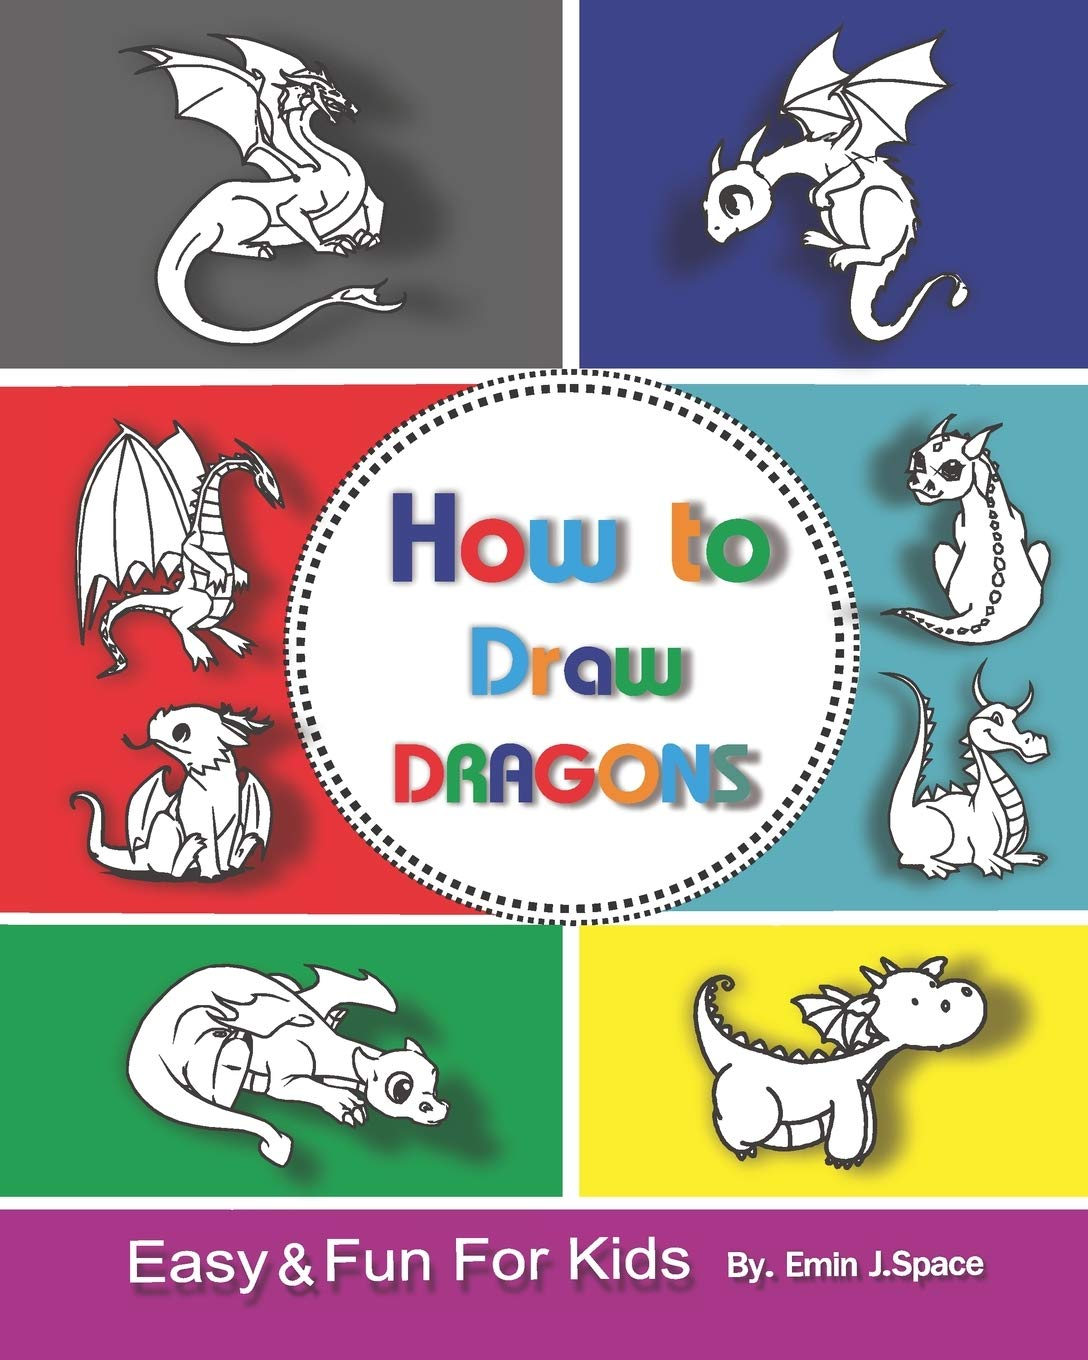 How To Draw Dragons For Kids Easy Fun Drawing Book For Kids Age 6 8 Space Emin J 9781983276712 Amazon Com Books